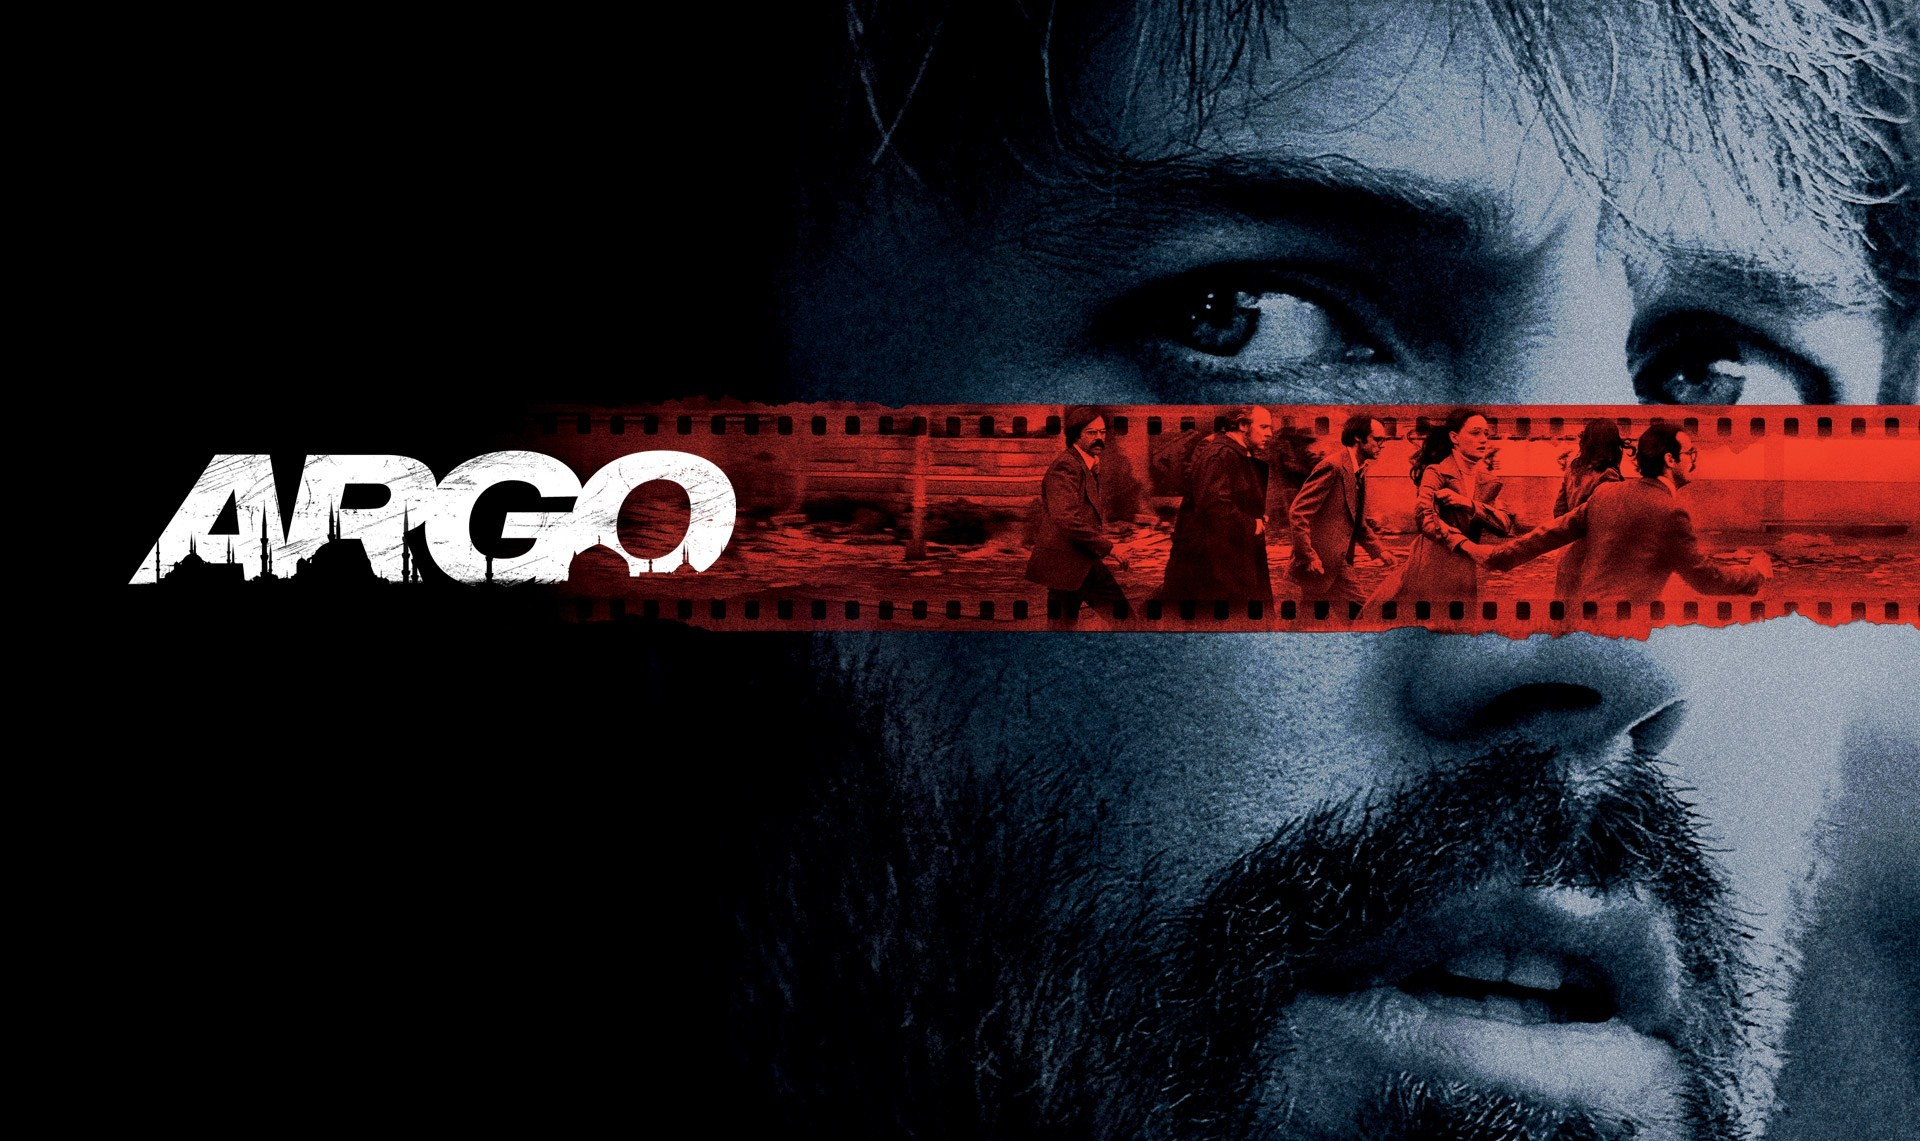 review meant for argo movie